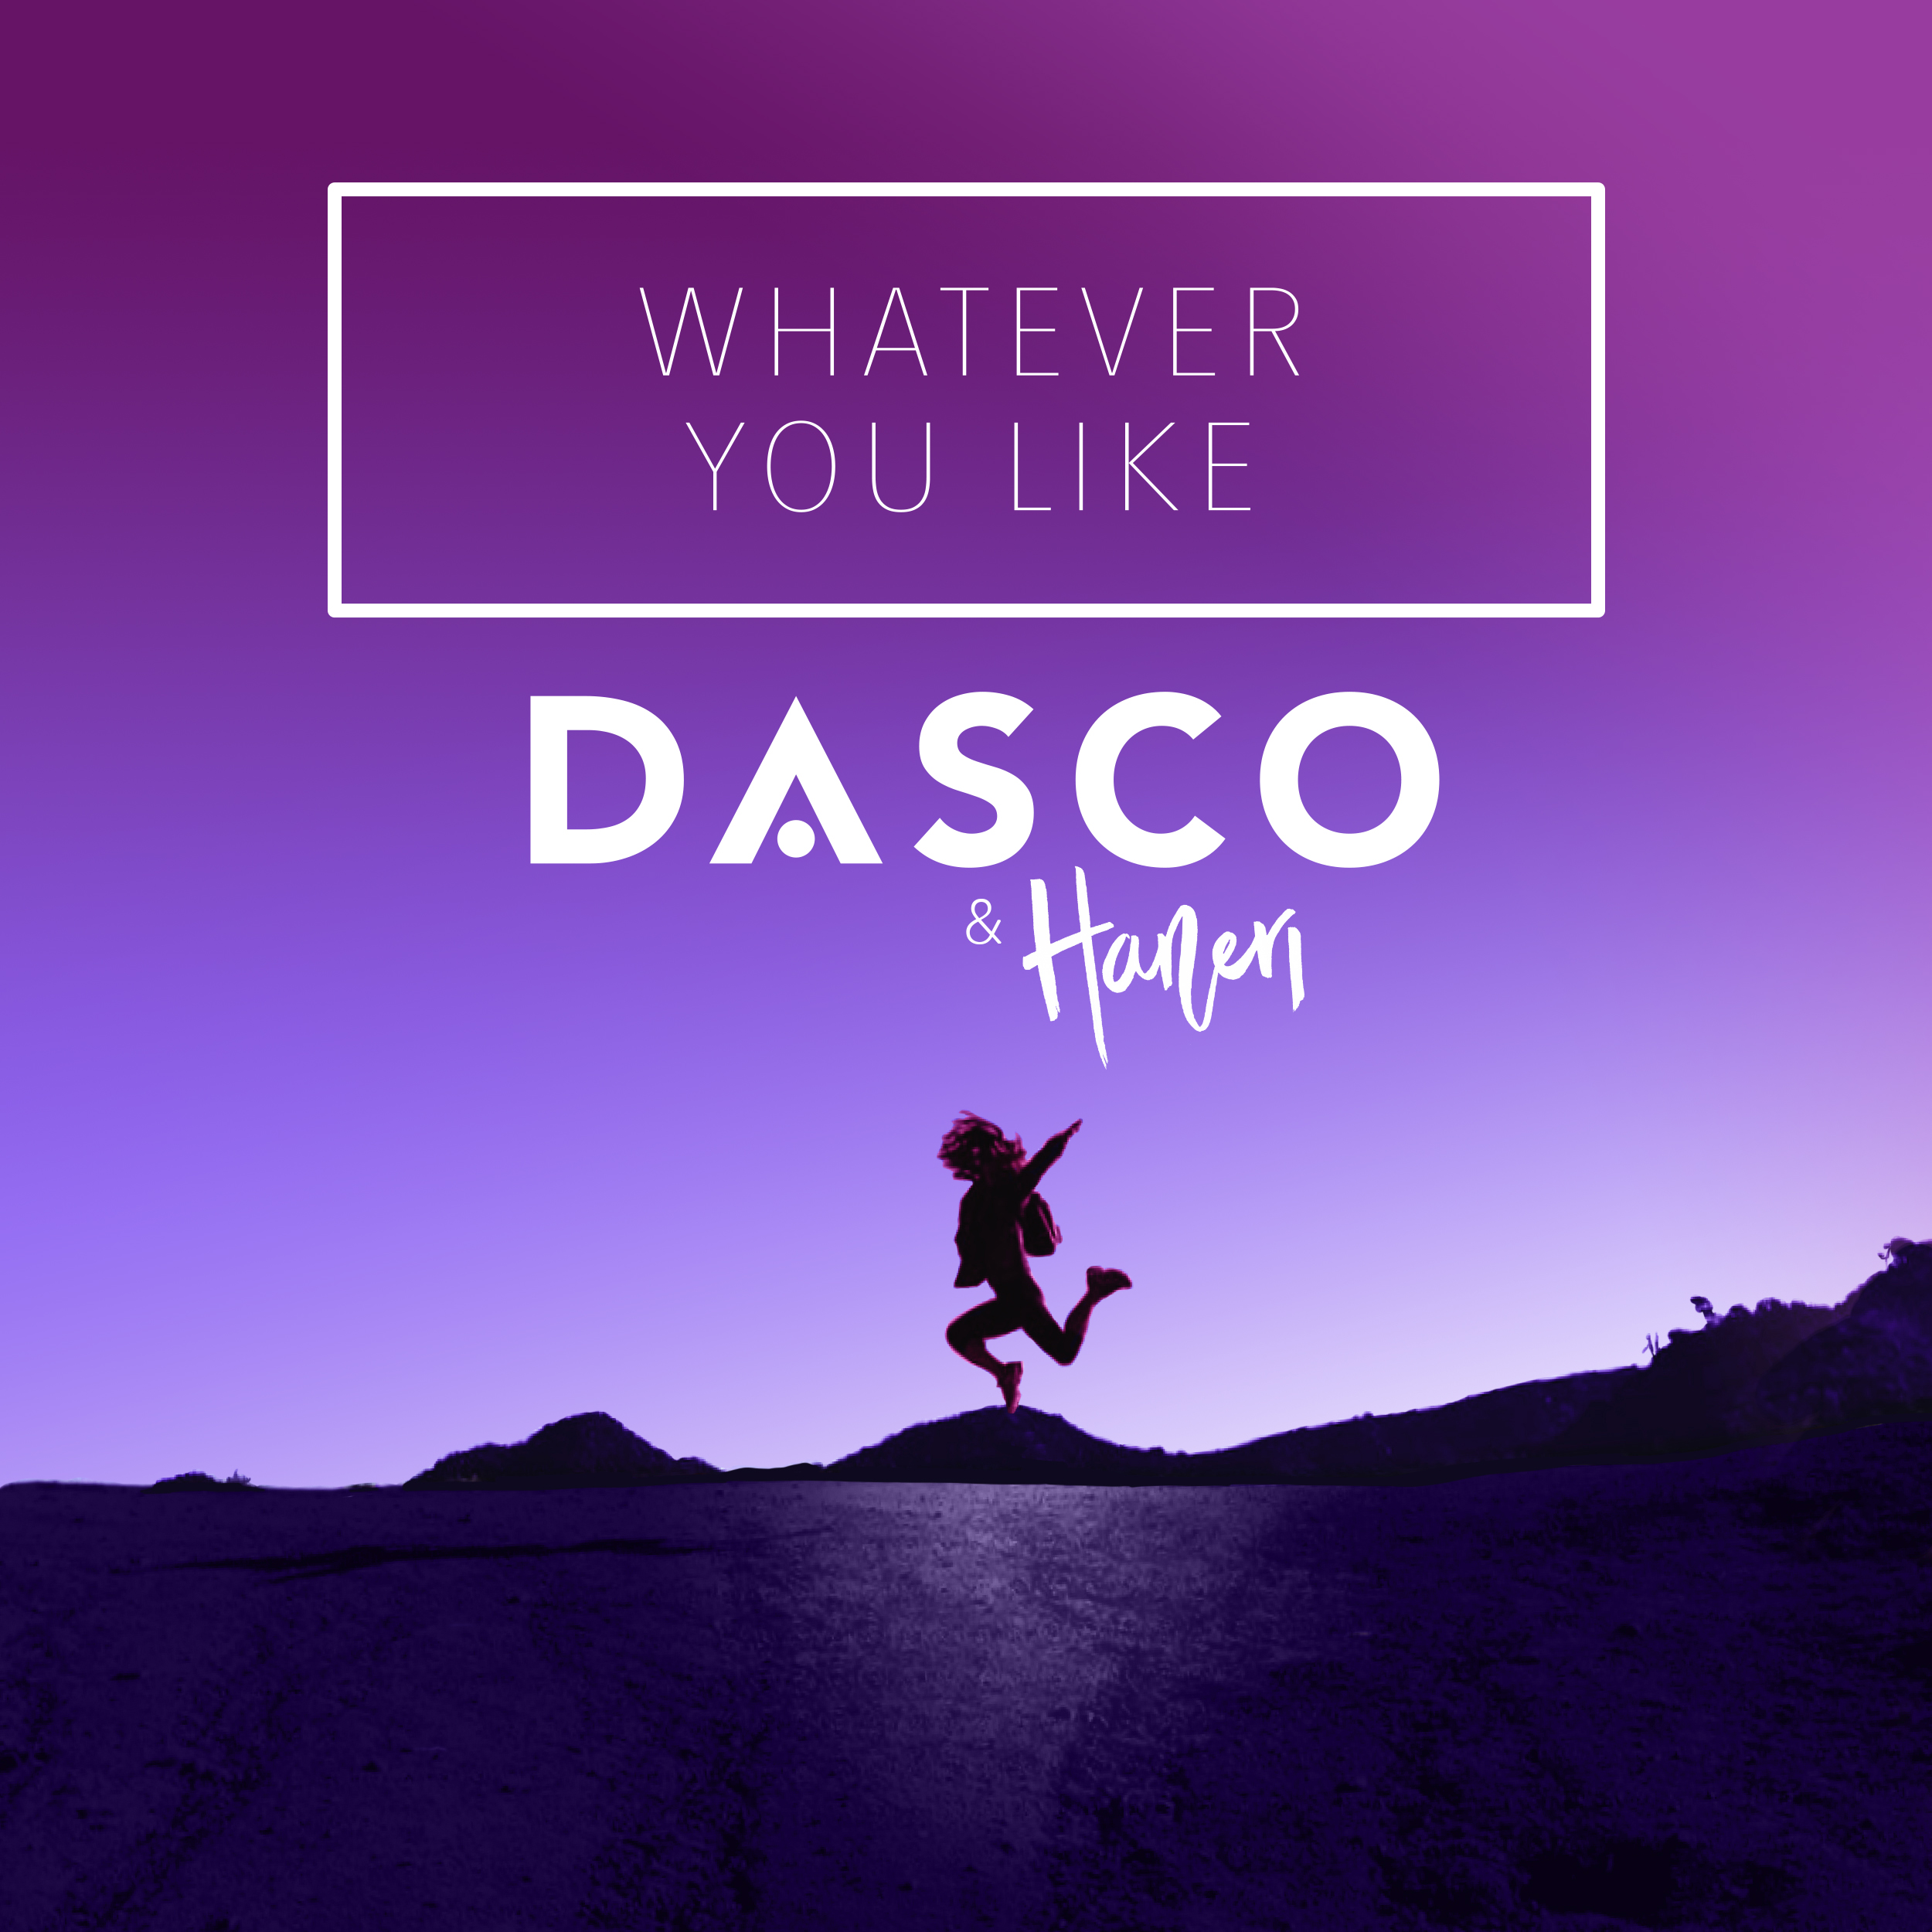 Dasco-WhateverYouLike-Final.jpg